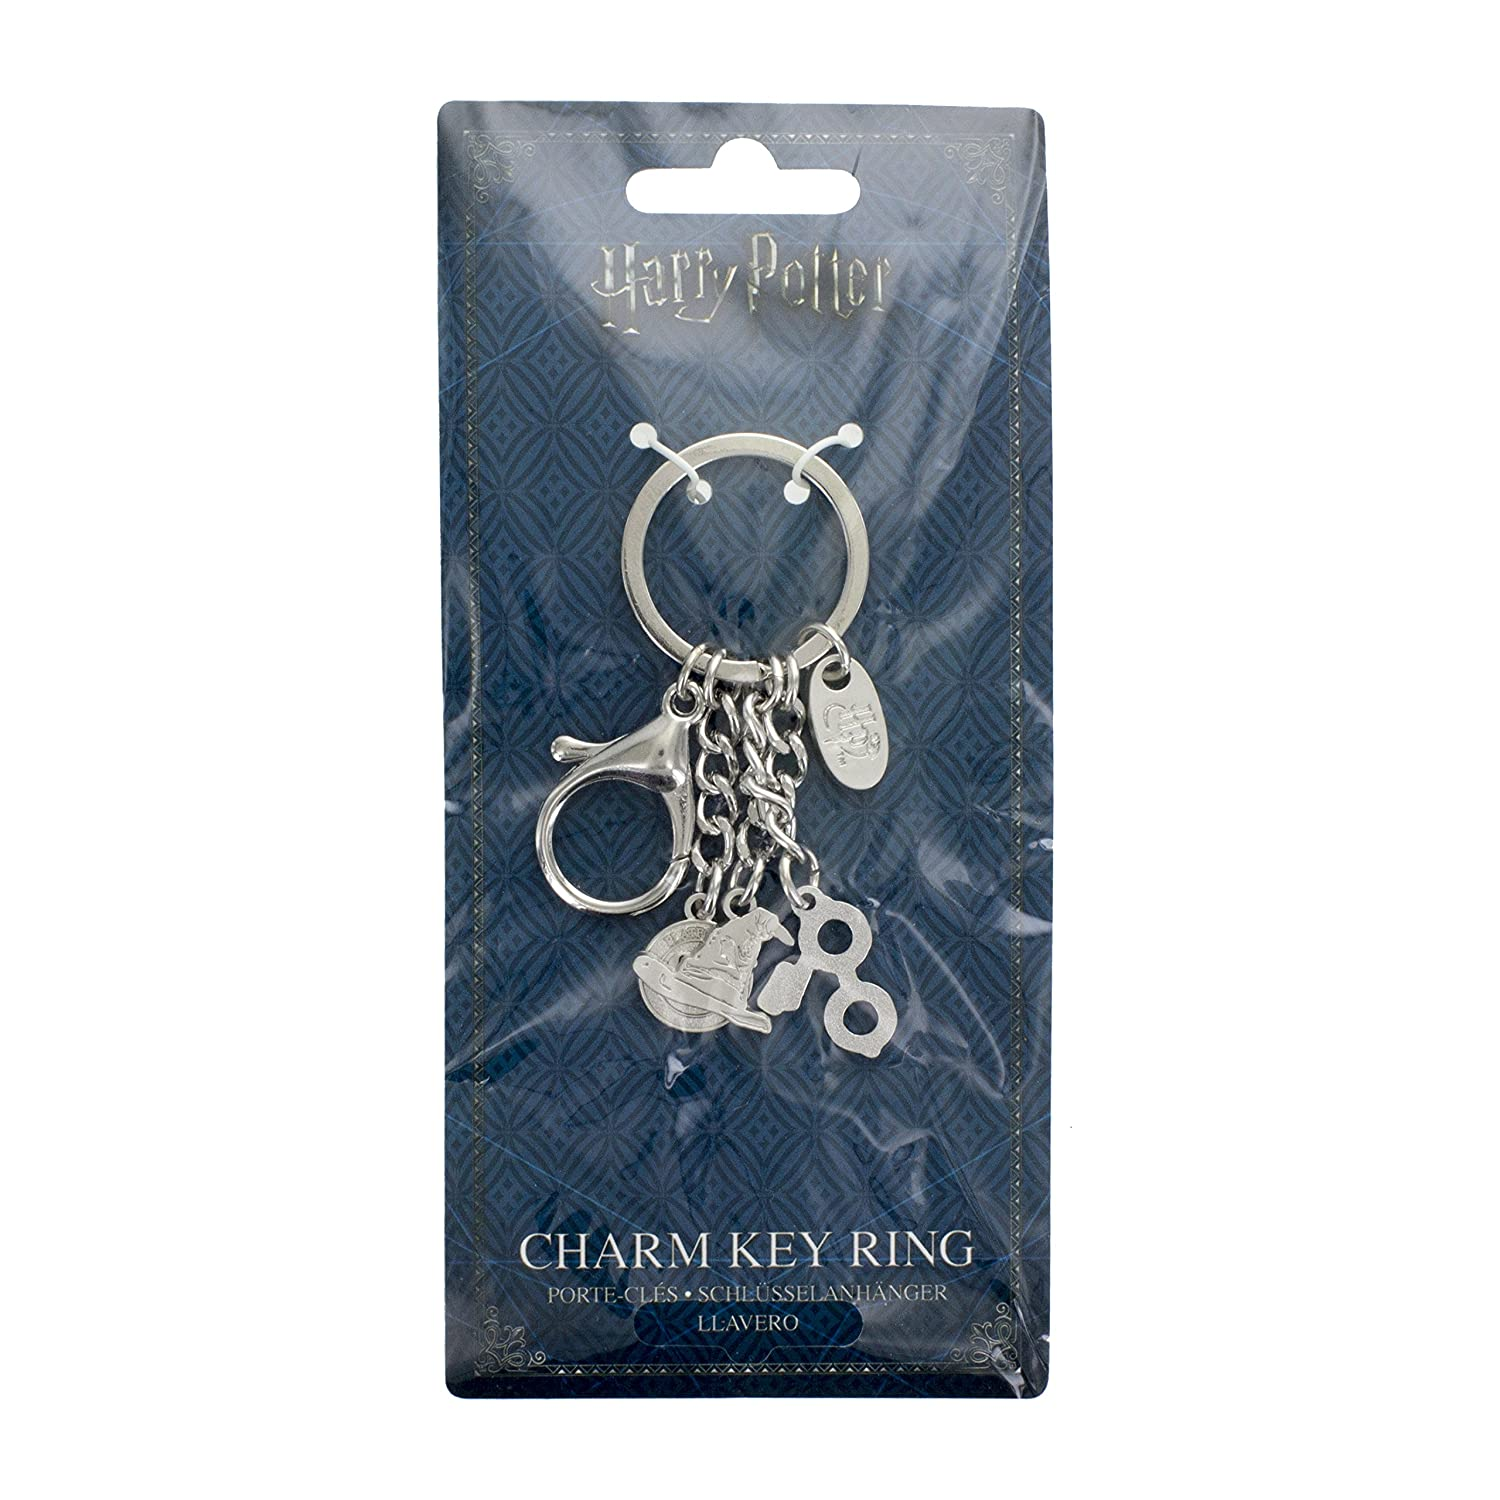 Paladone Harry Potter Charm Keyring Novelty Keychain - Glasses, Sorting Hat, 9 3/4 Charms